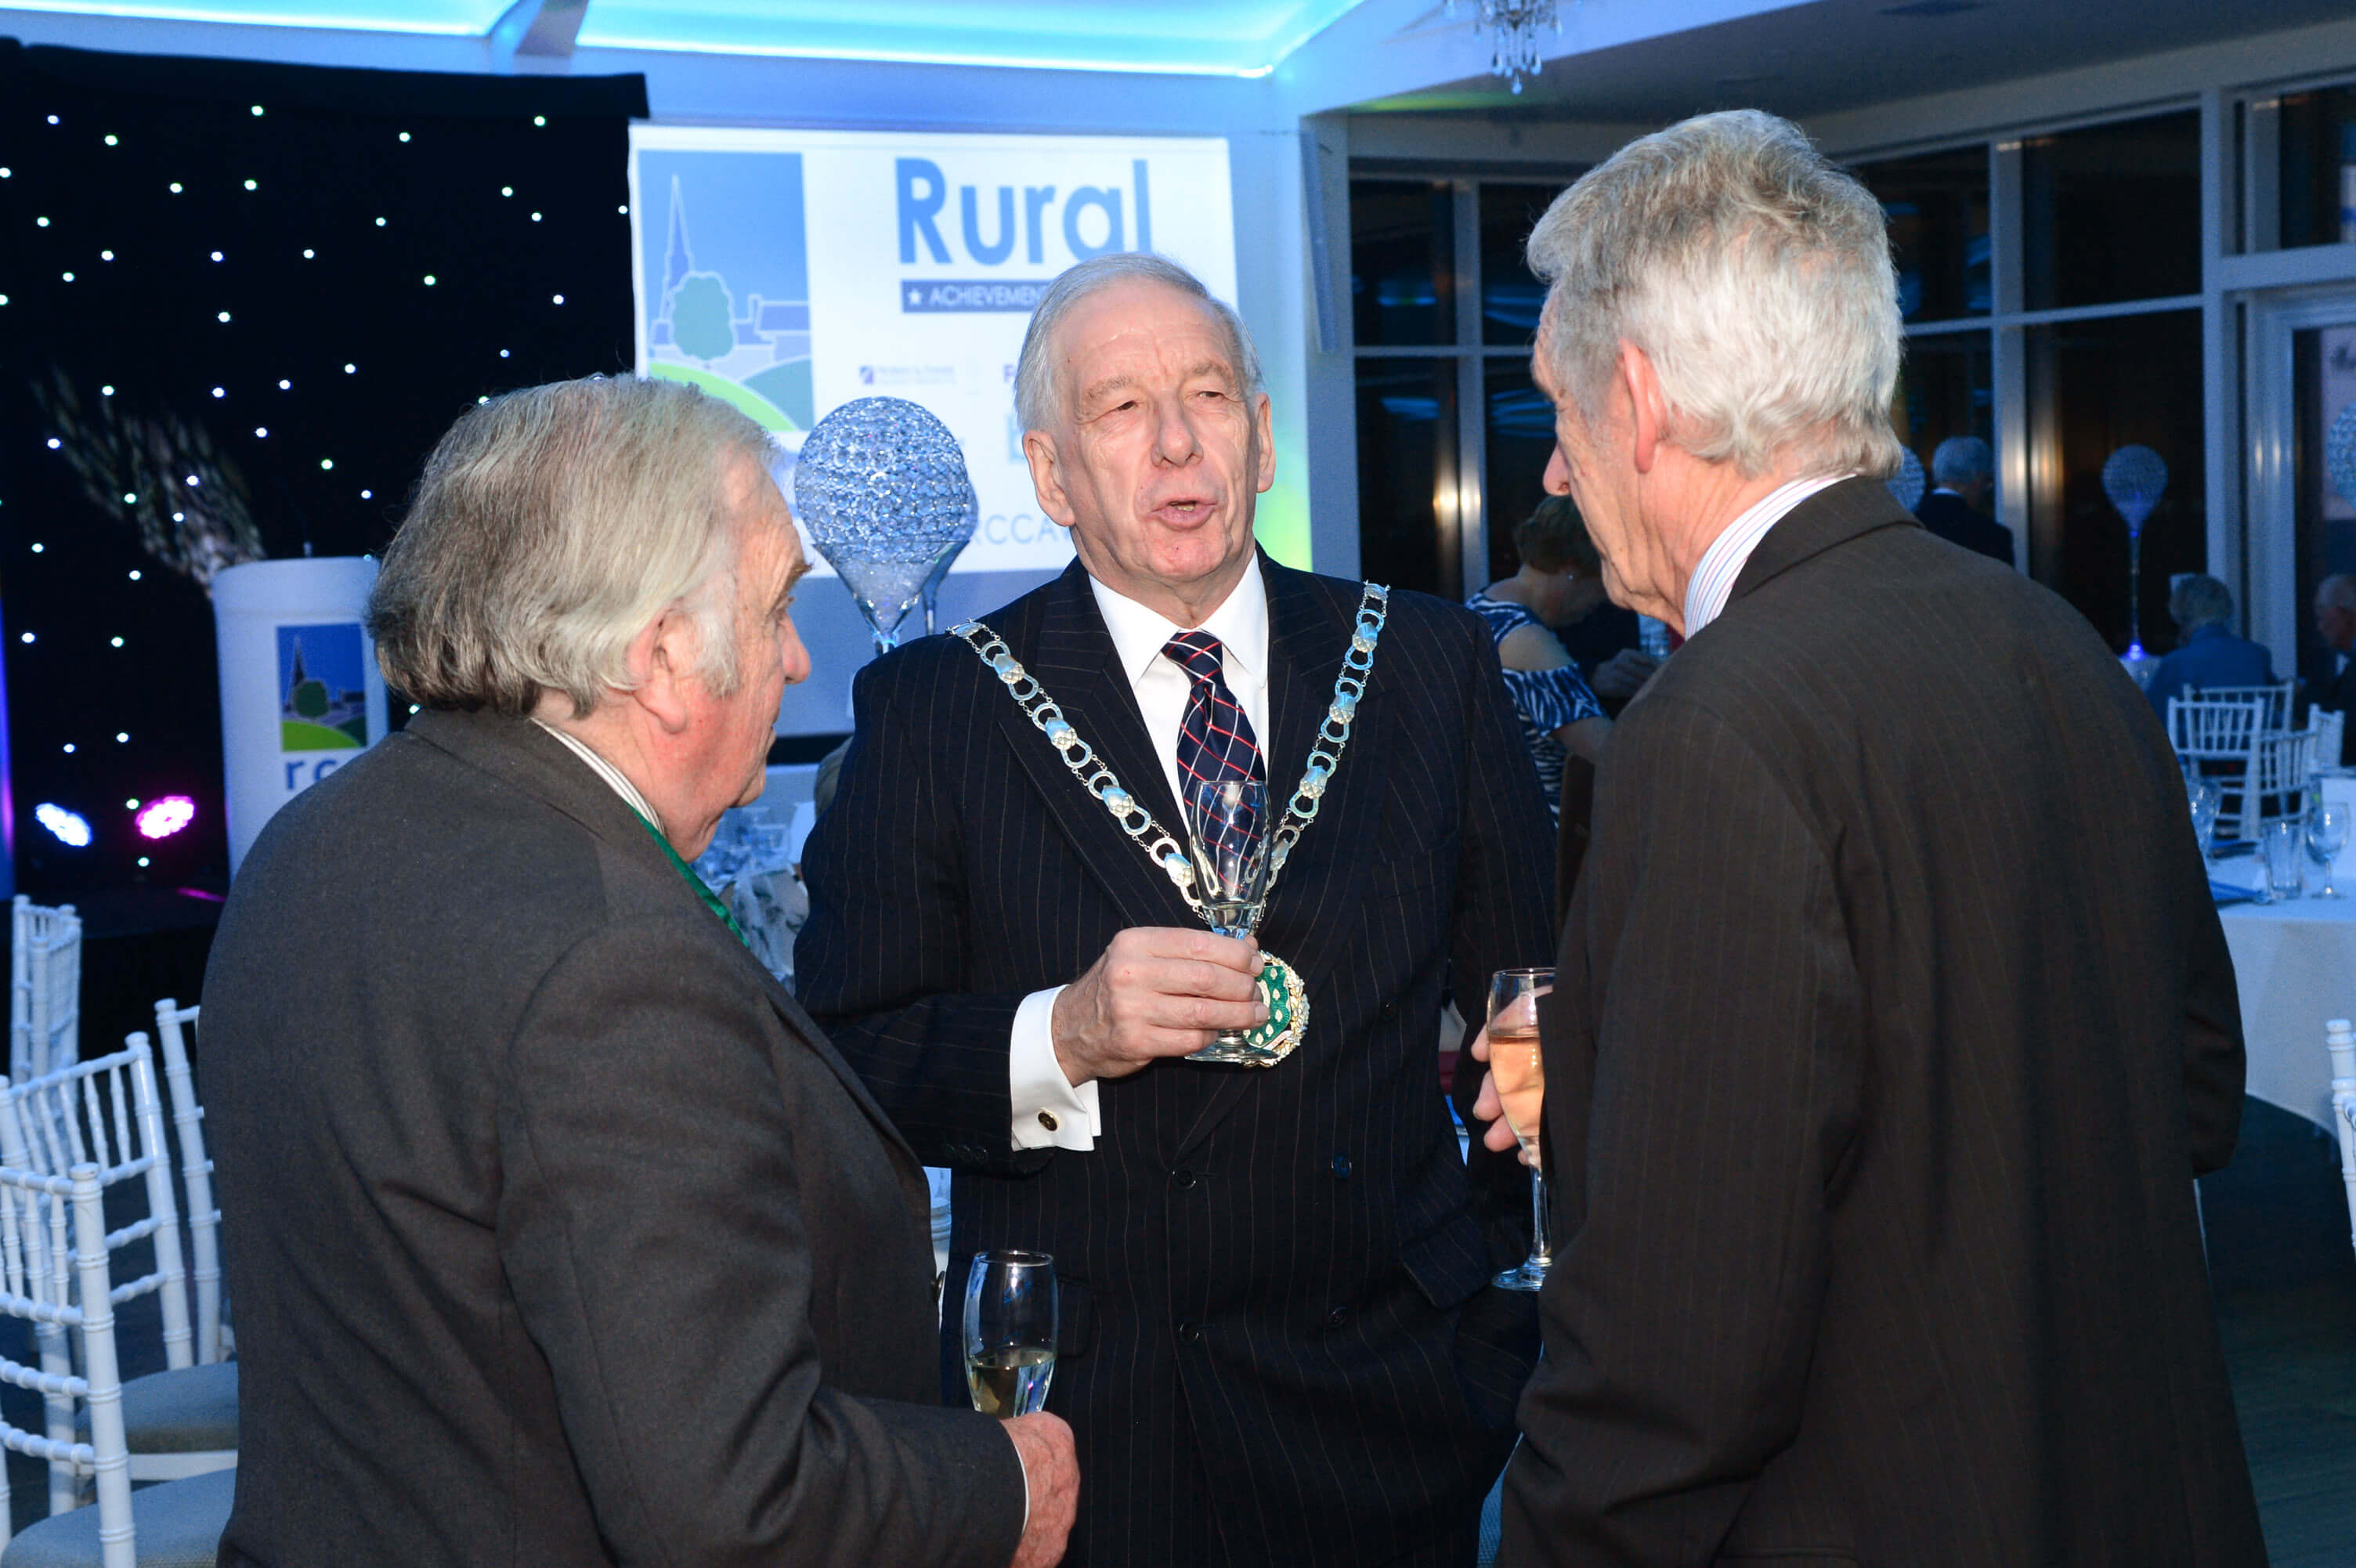 2018 RCC Rural Awards 4240